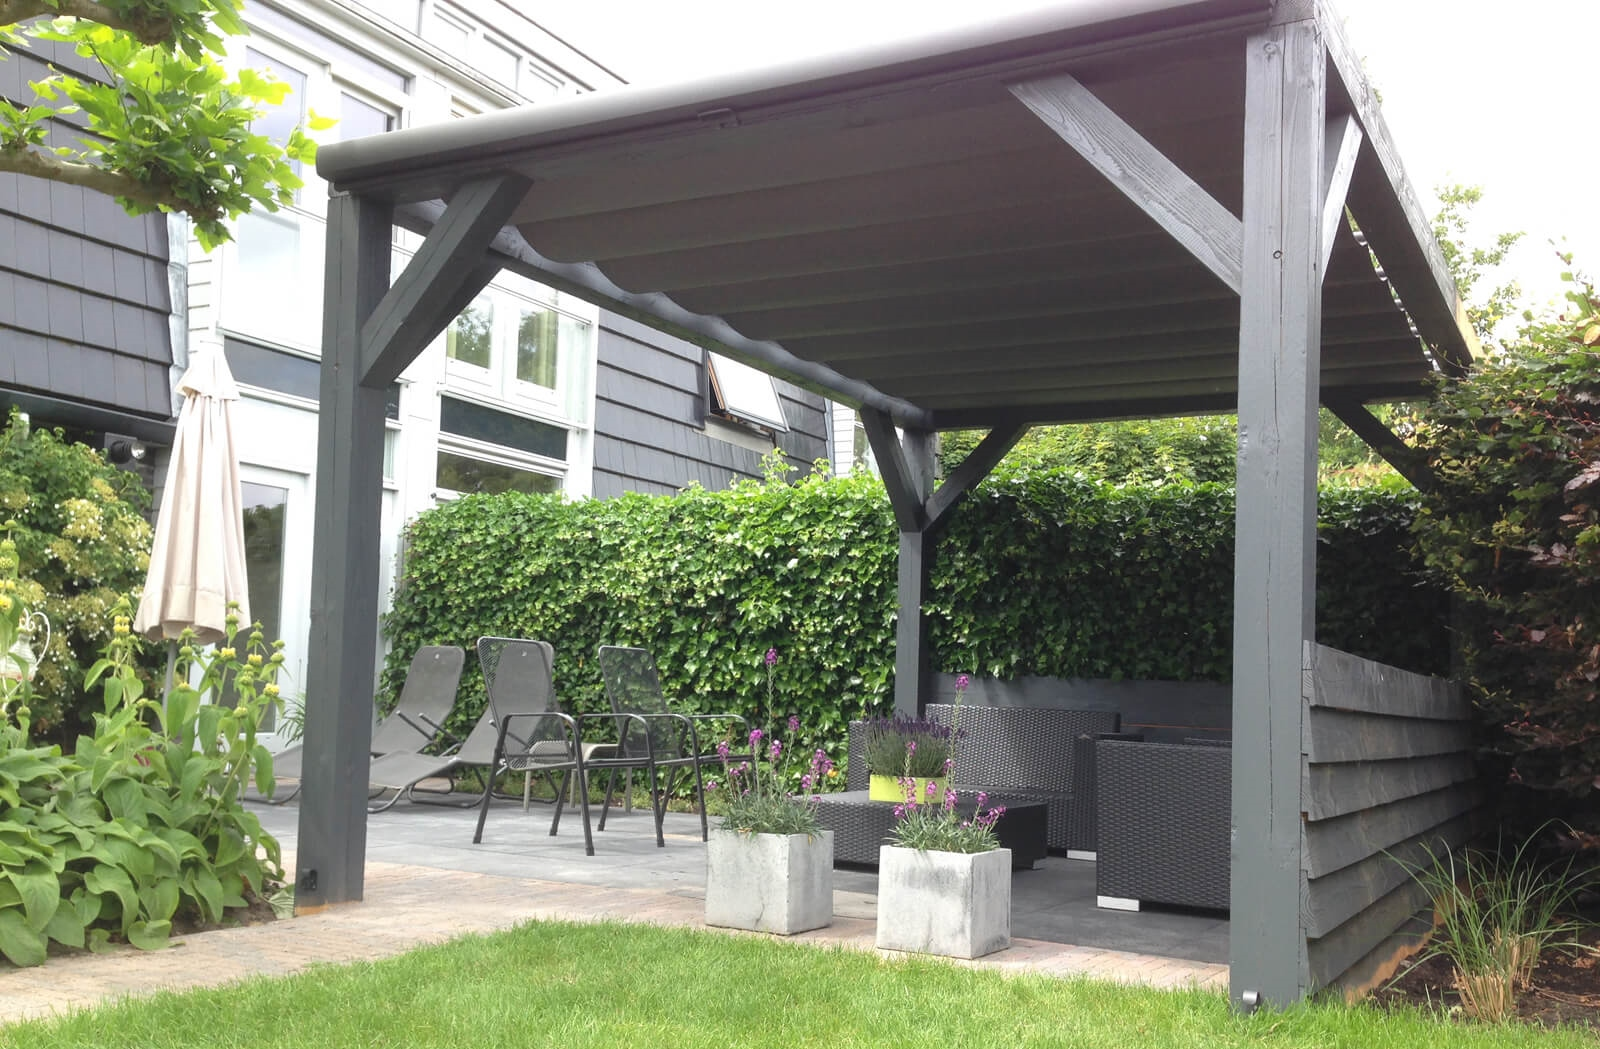 Overkapping over terras of tuin - Solem van LuxxOut